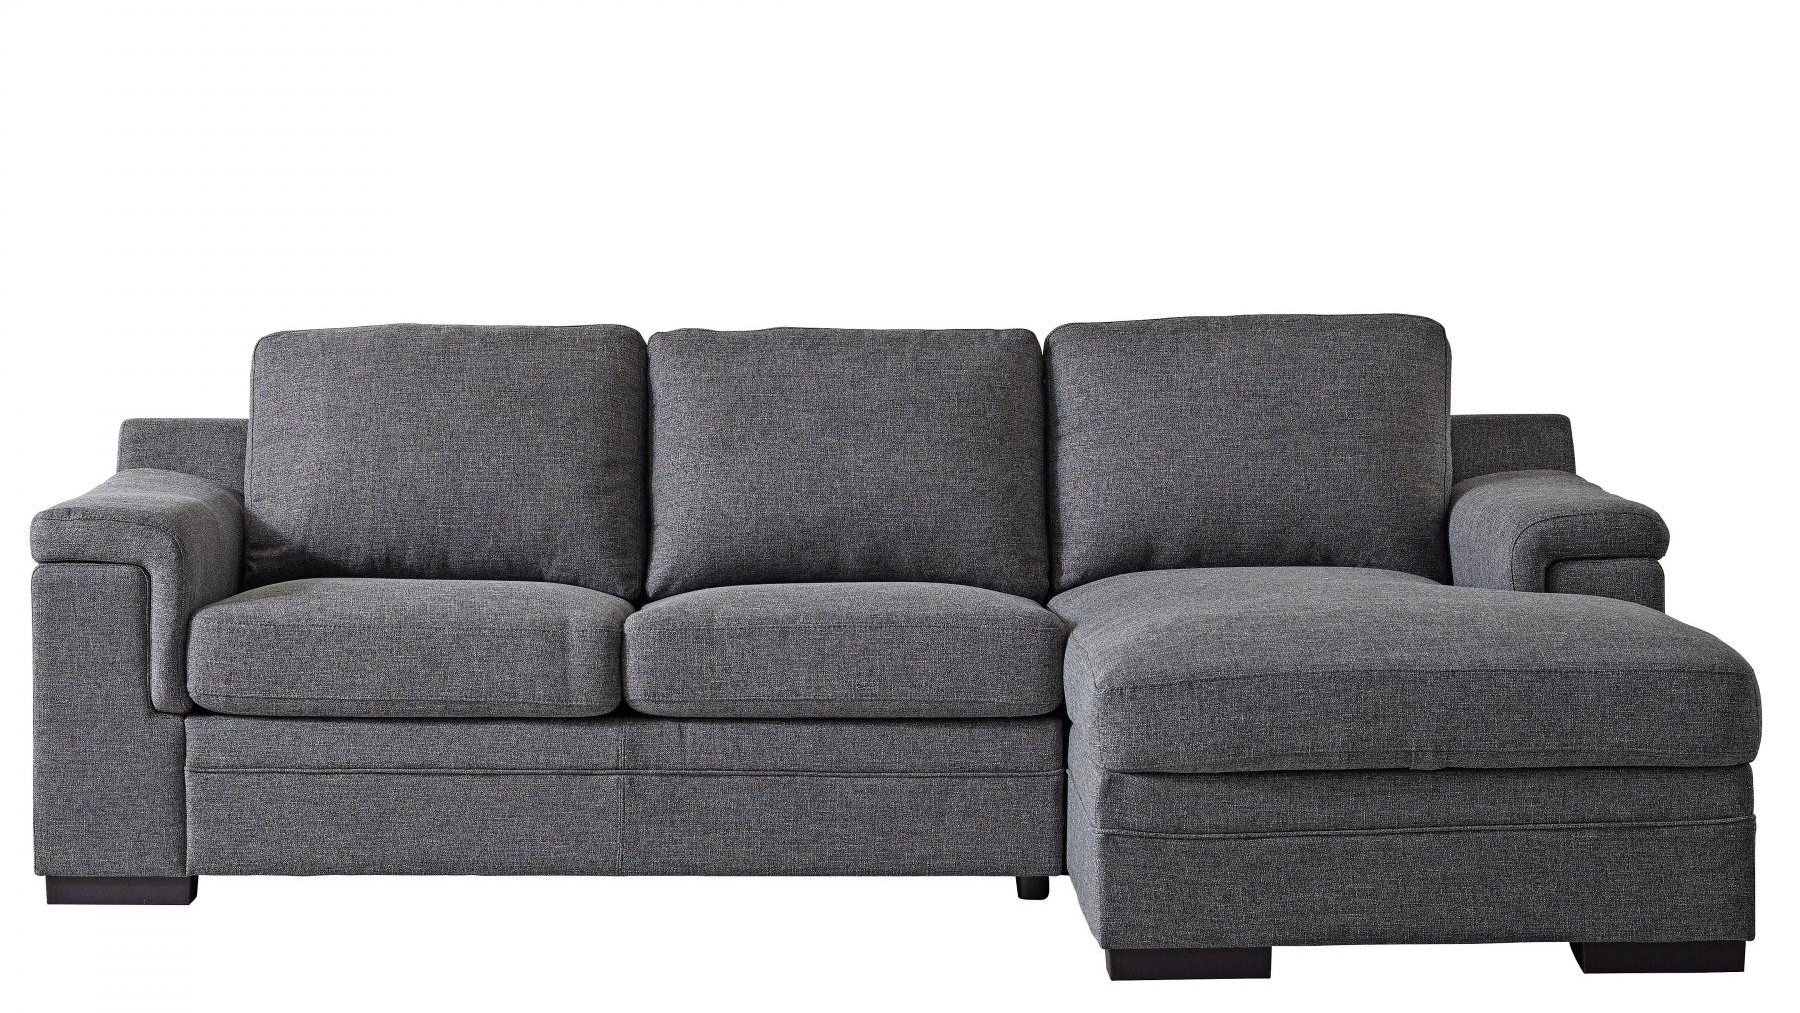 Buy Santiago Fabric Sofa Bed with Chaise | Harvey Norman AU